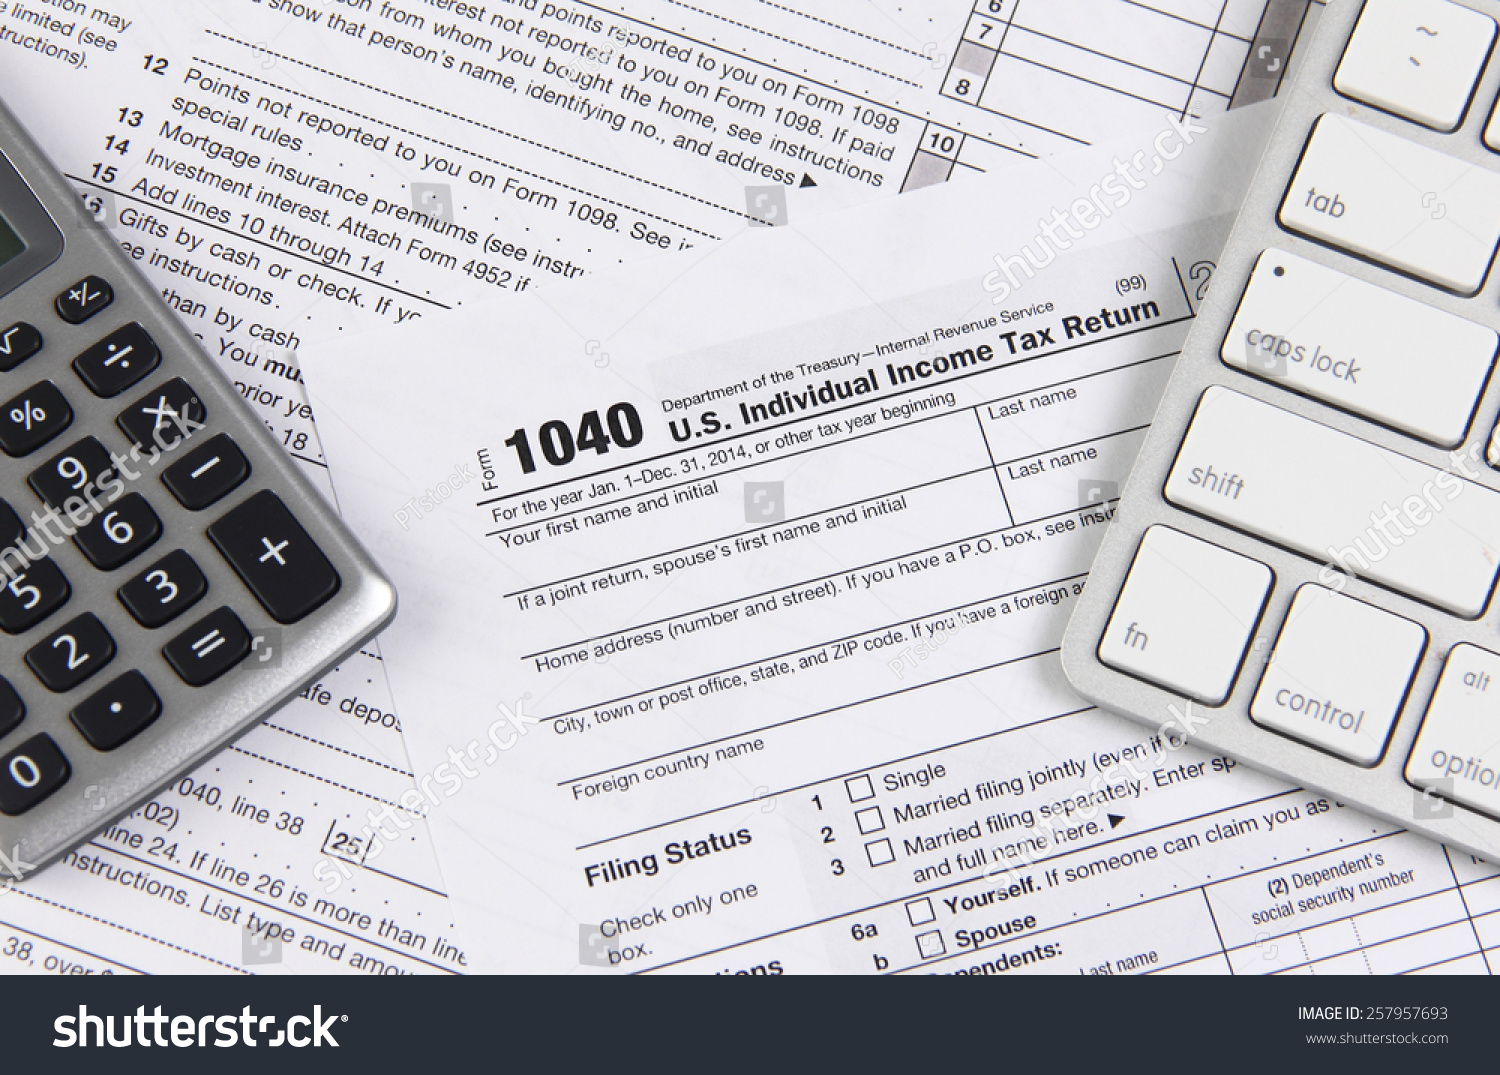 Online tax filing federal 1040 form stock photo 257957693 online tax filing federal 1040 form with computer keyboard and calculator falaconquin